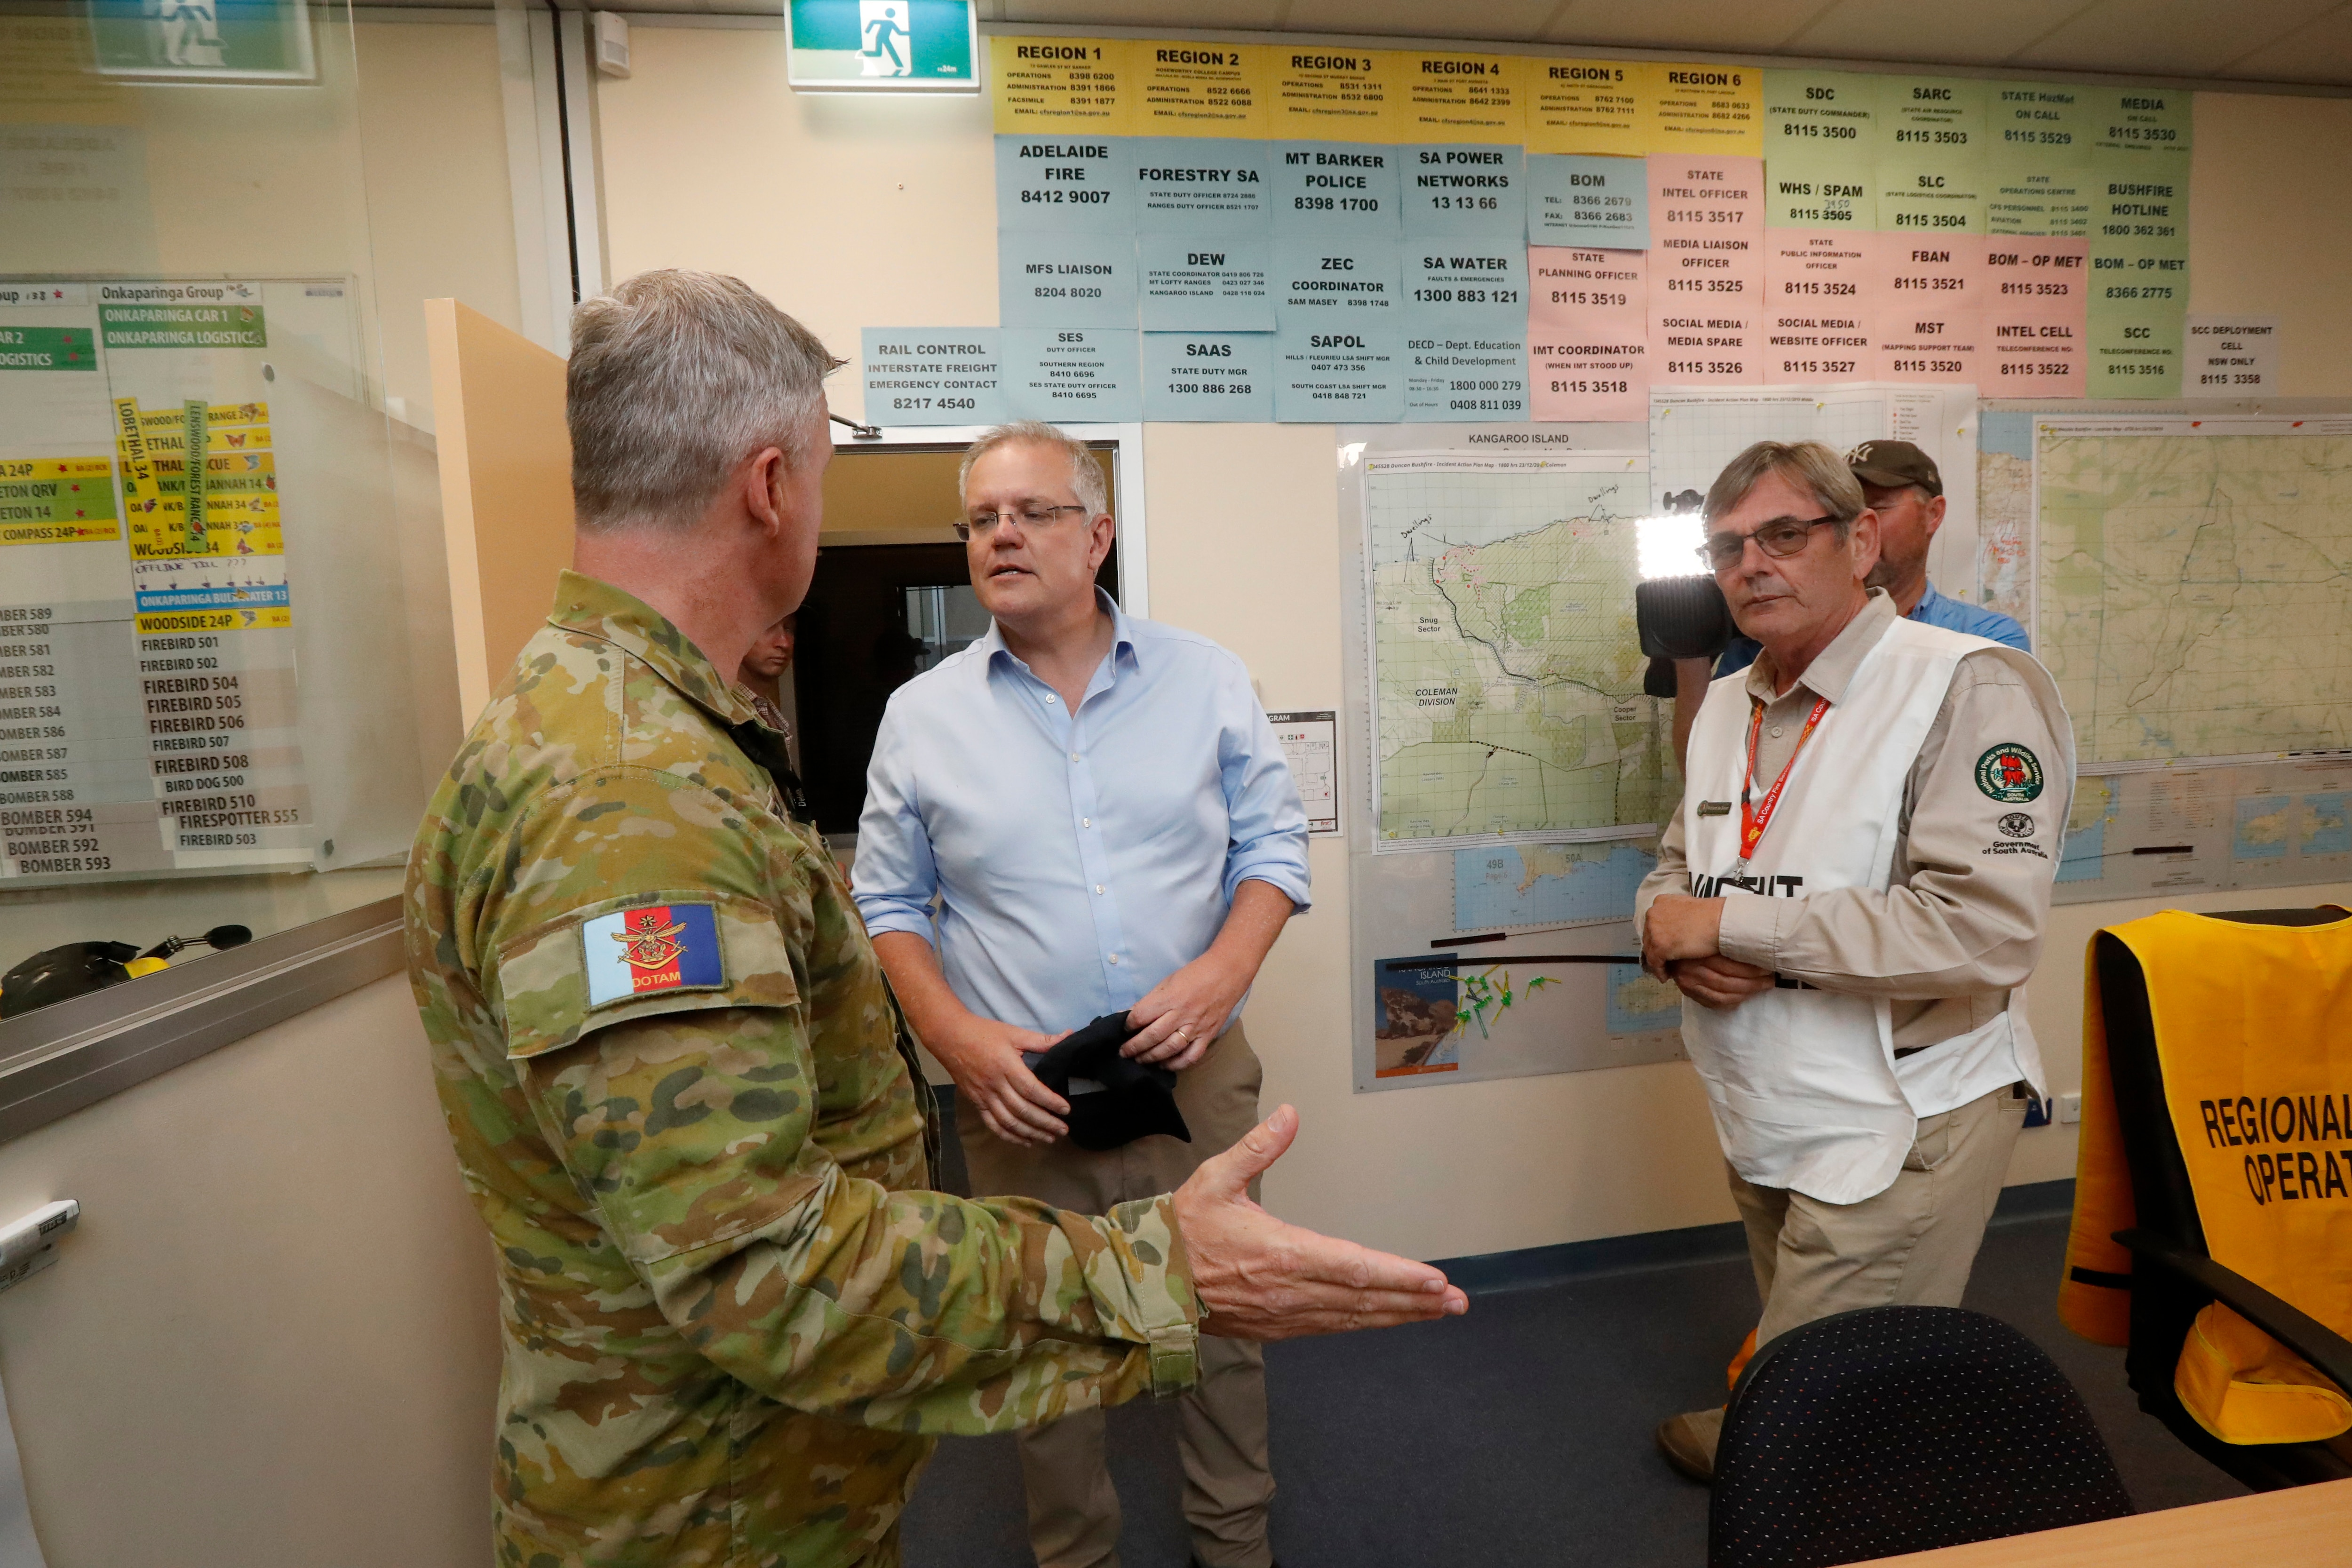 Prime Minister Scott Morrison is briefed by CFS volunteers and the military at the Mt Barker CFS HQ in Mount Barker.